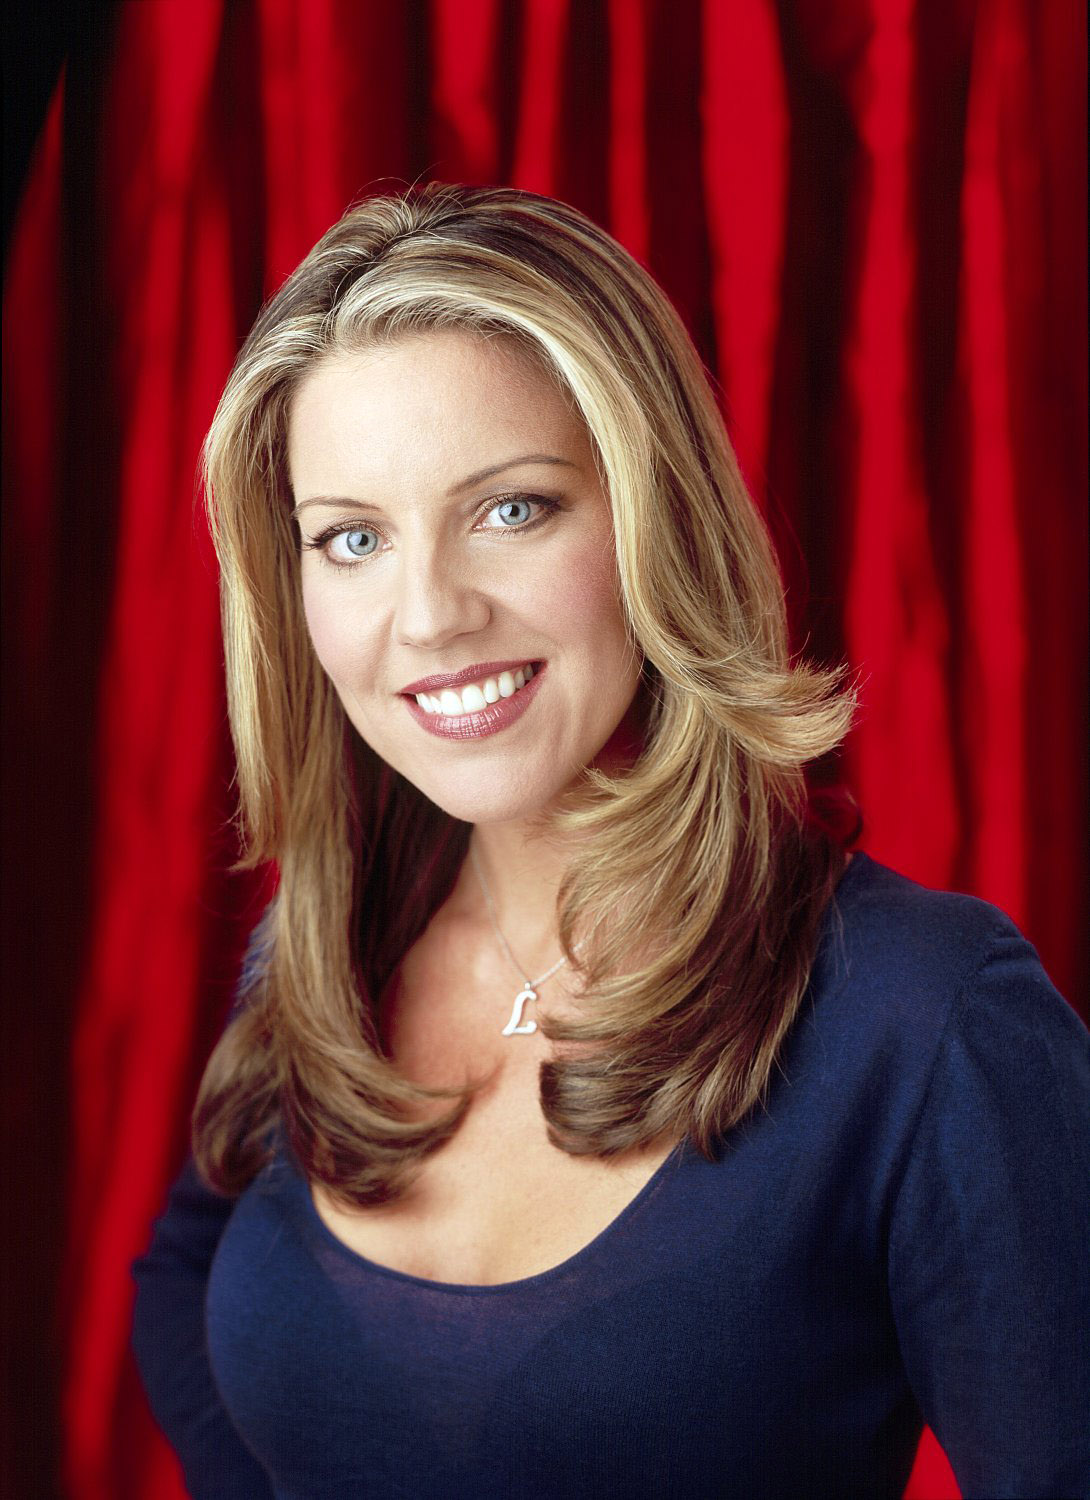 Photo of the cool beautiful  Andrea Parker from Monterey County, California, United States without makeup